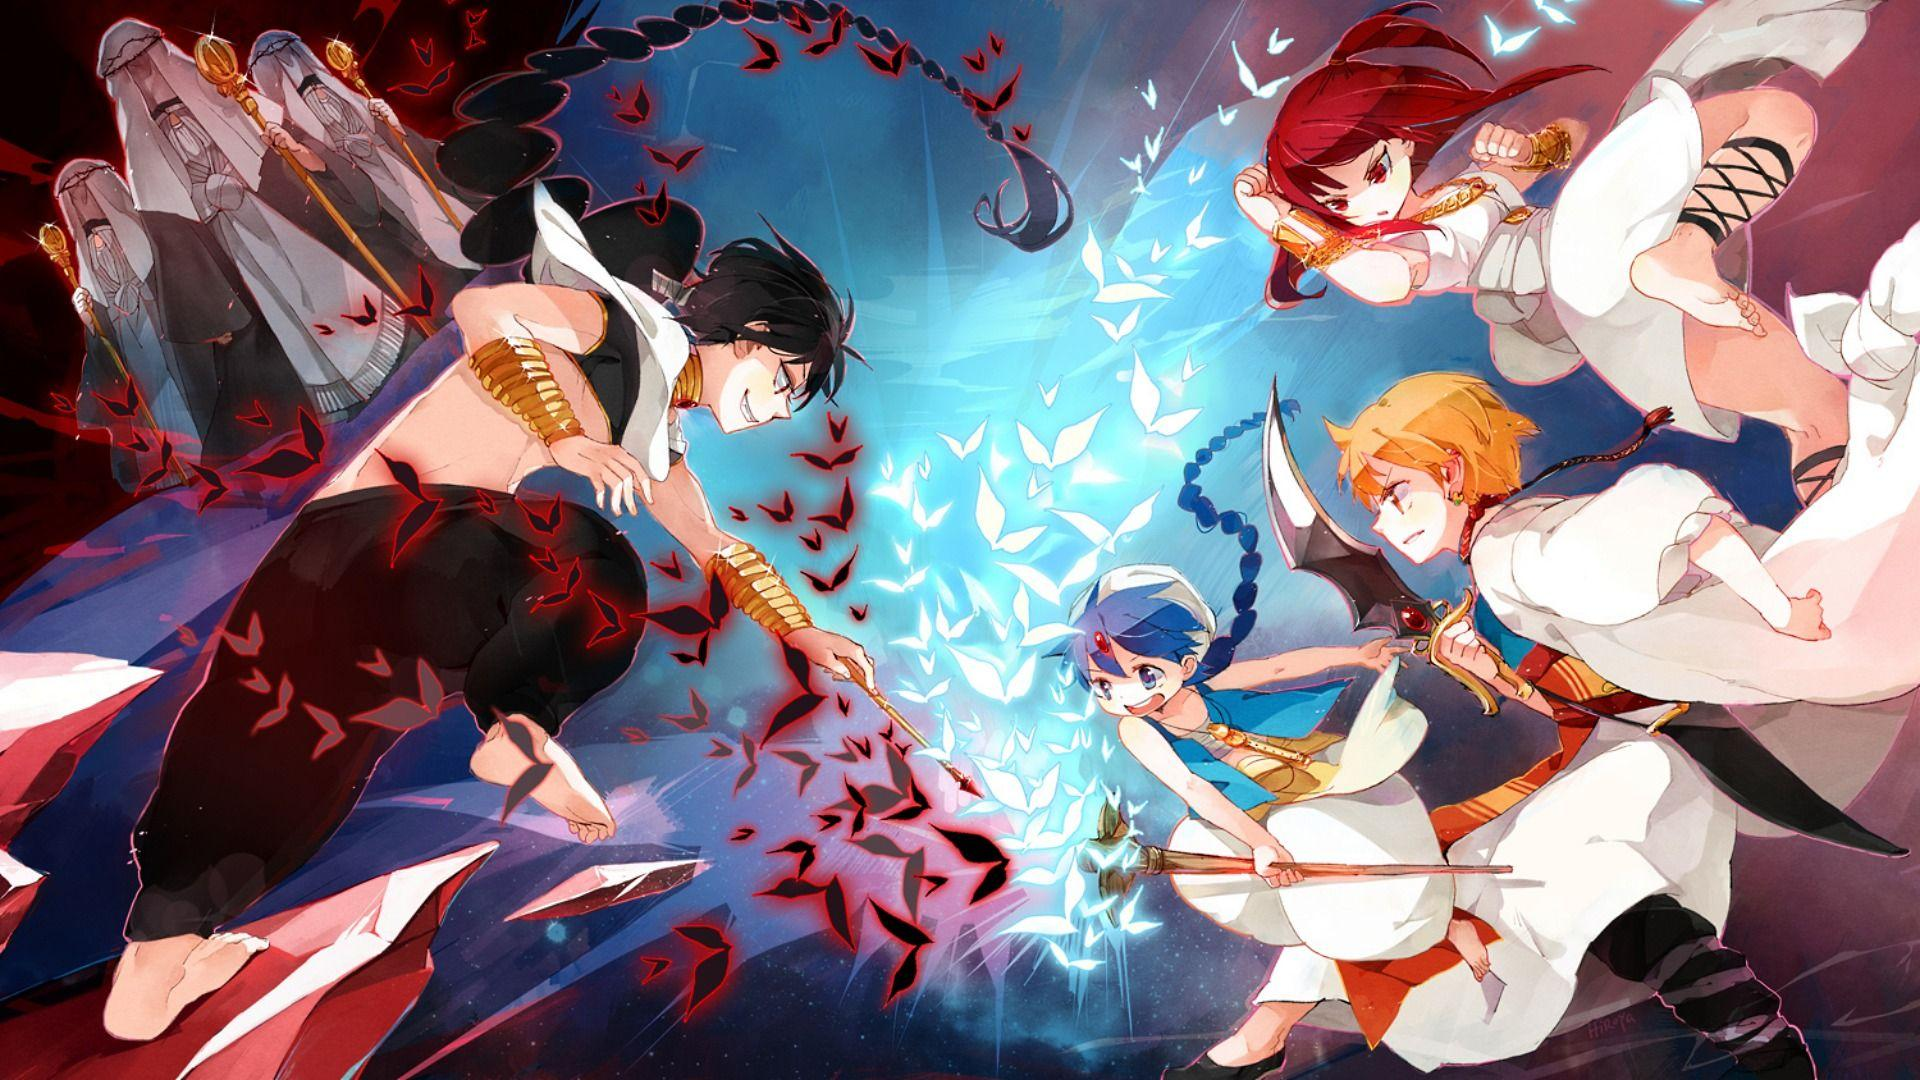 Magi: The Labyrinth of Magic HD Wallpaper | Animation Wallpapers